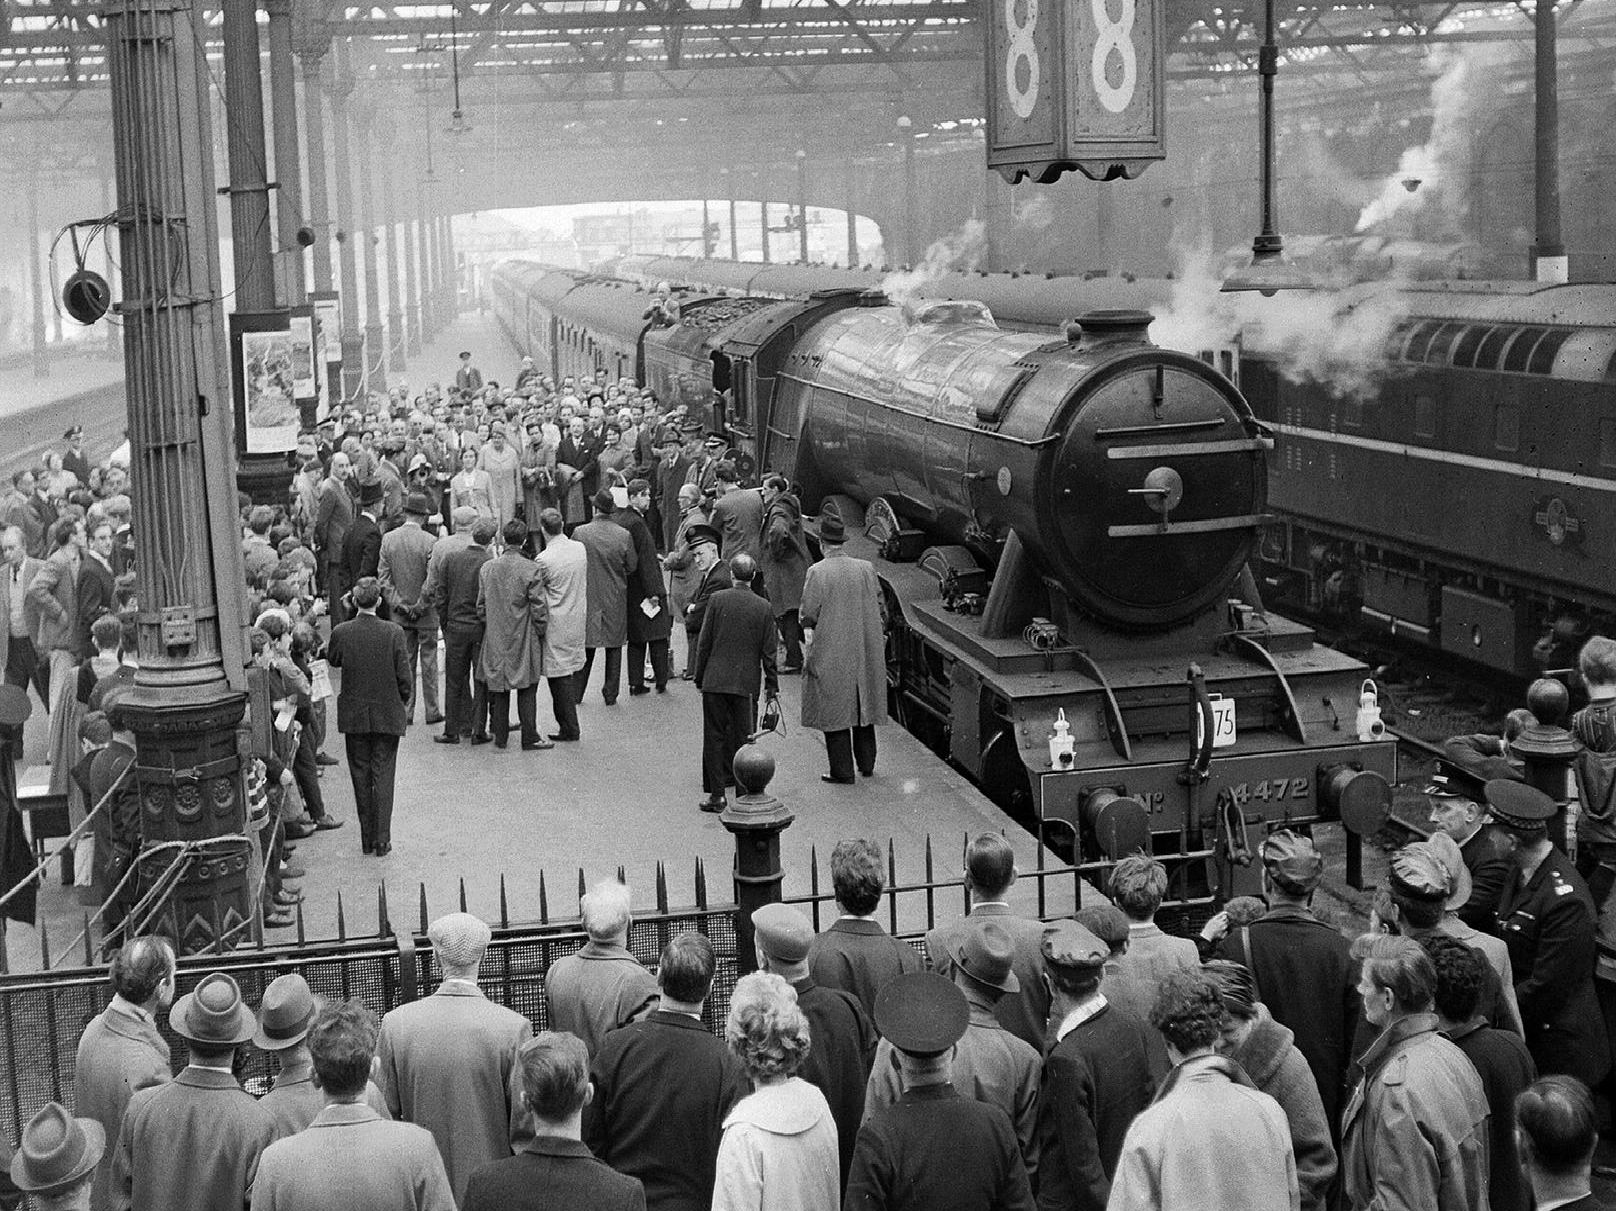 Crowds gather to watch the Flying Scotsman leave Waverley Station in 1964 (Photo: TSPL)